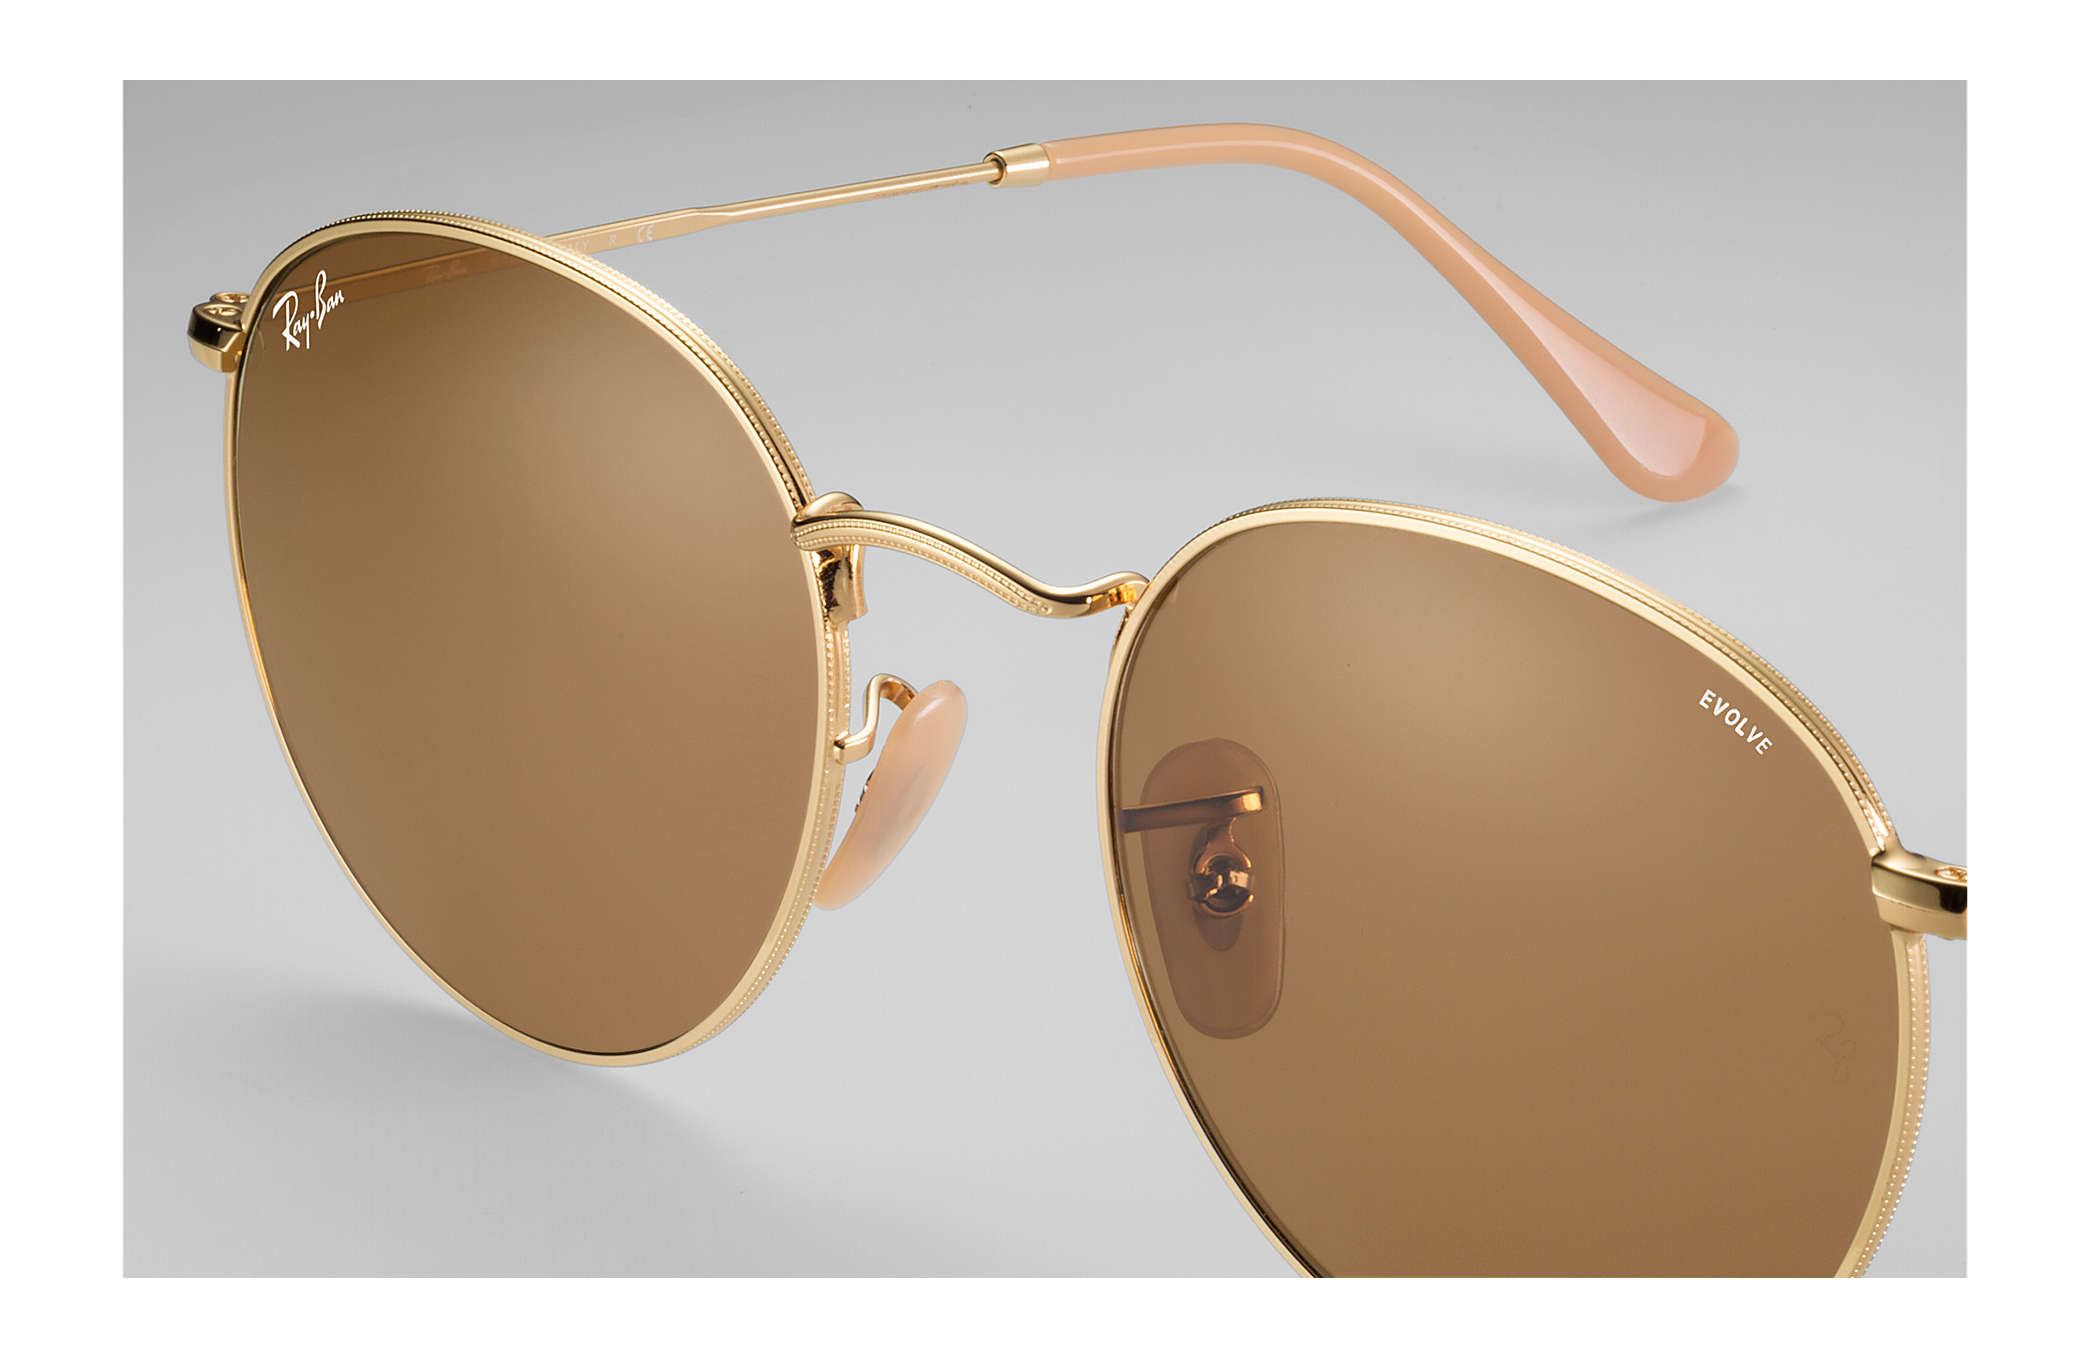 4149a68fcceea Ray-Ban Round Evolve RB3447 Gold - Metal - Brown Lenses ...